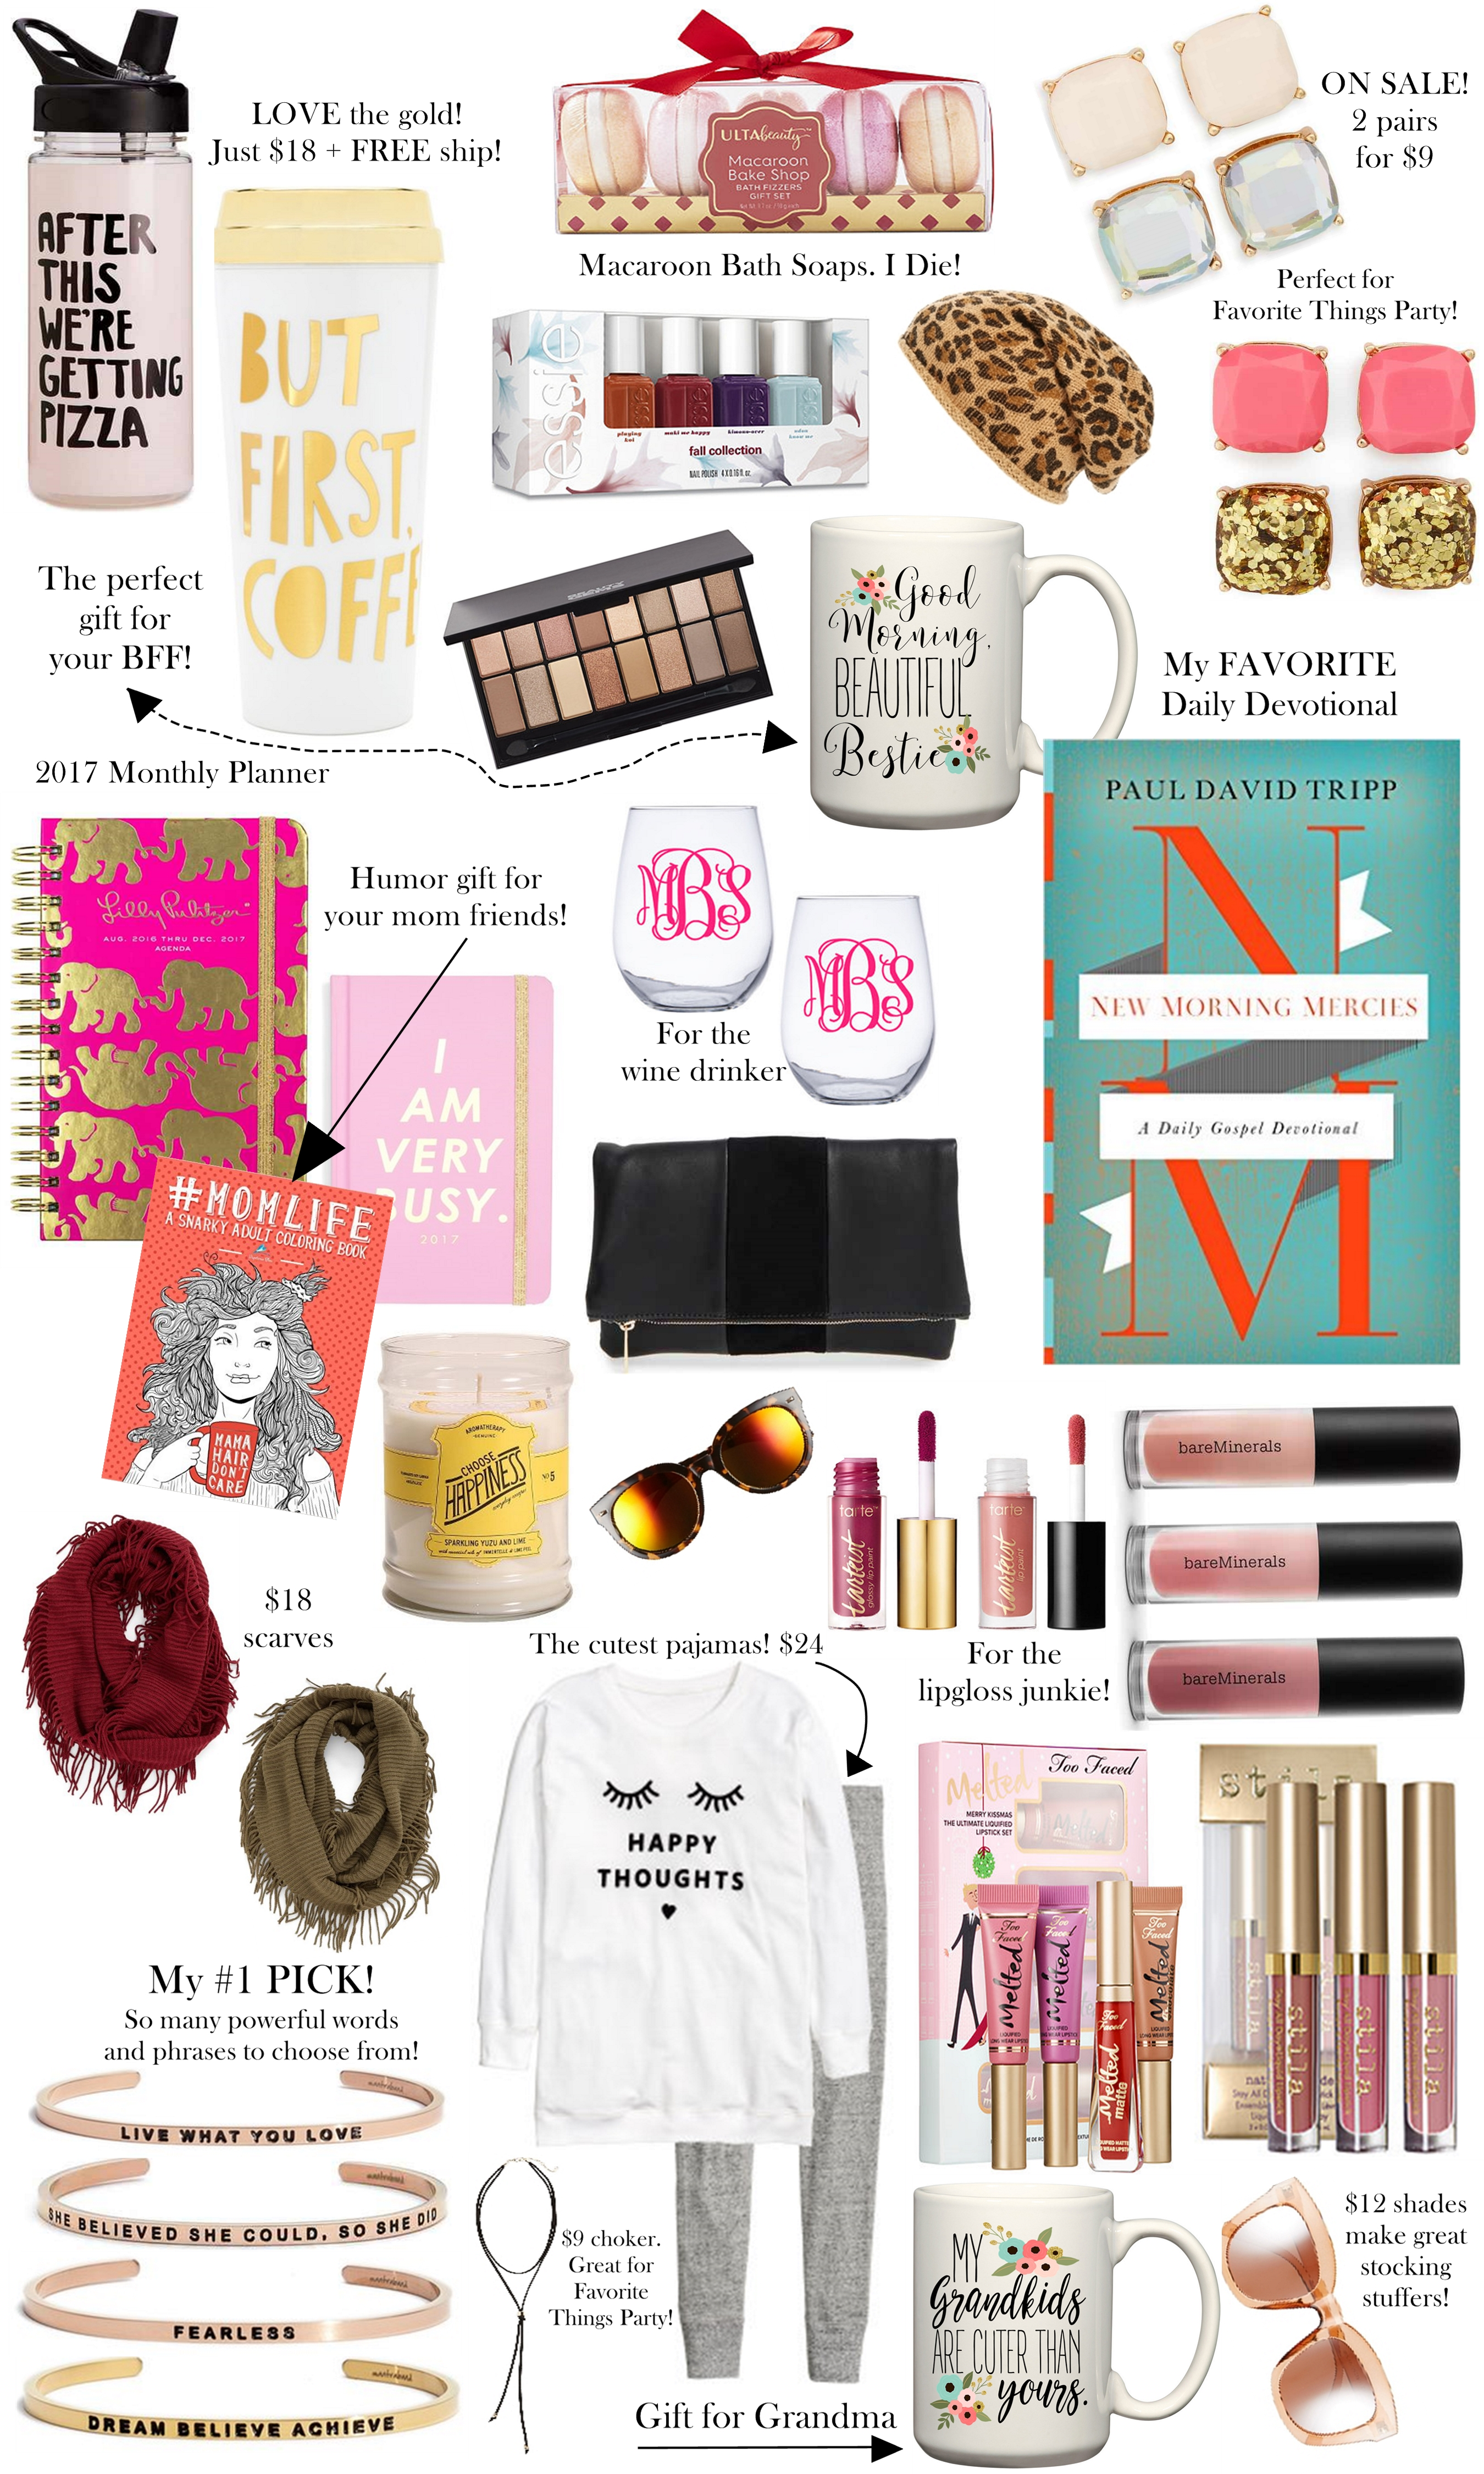 Christmas Gifts: 25 Under $25 - The Sister Studio